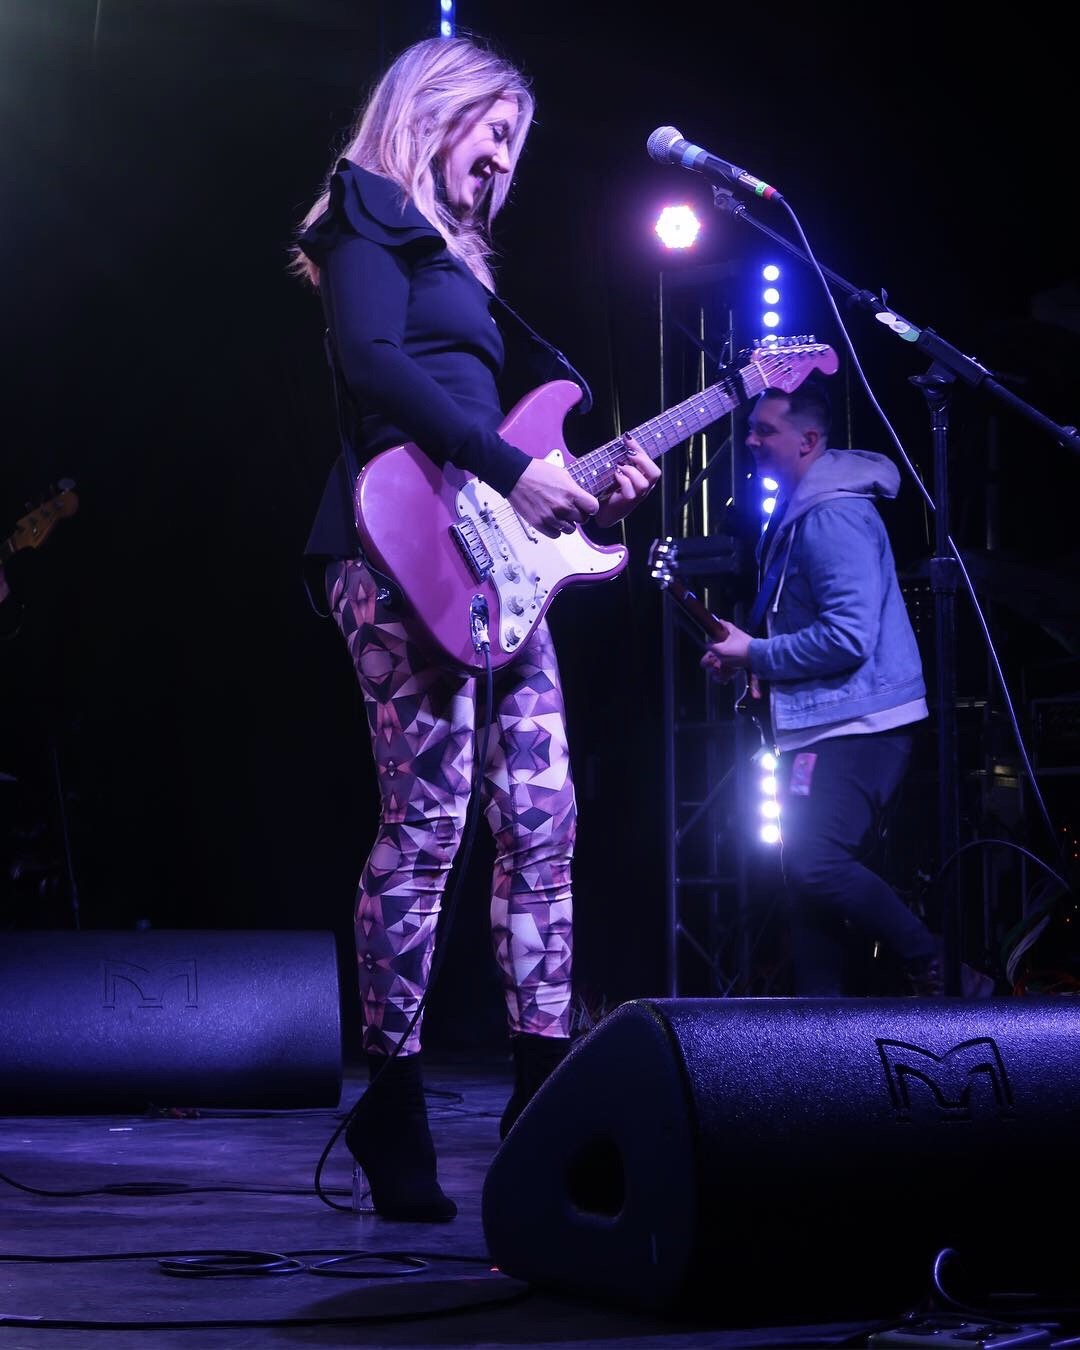 Liz Phair performed many songs form Exile in Guyville at the 2019 Treefort Music Fest.